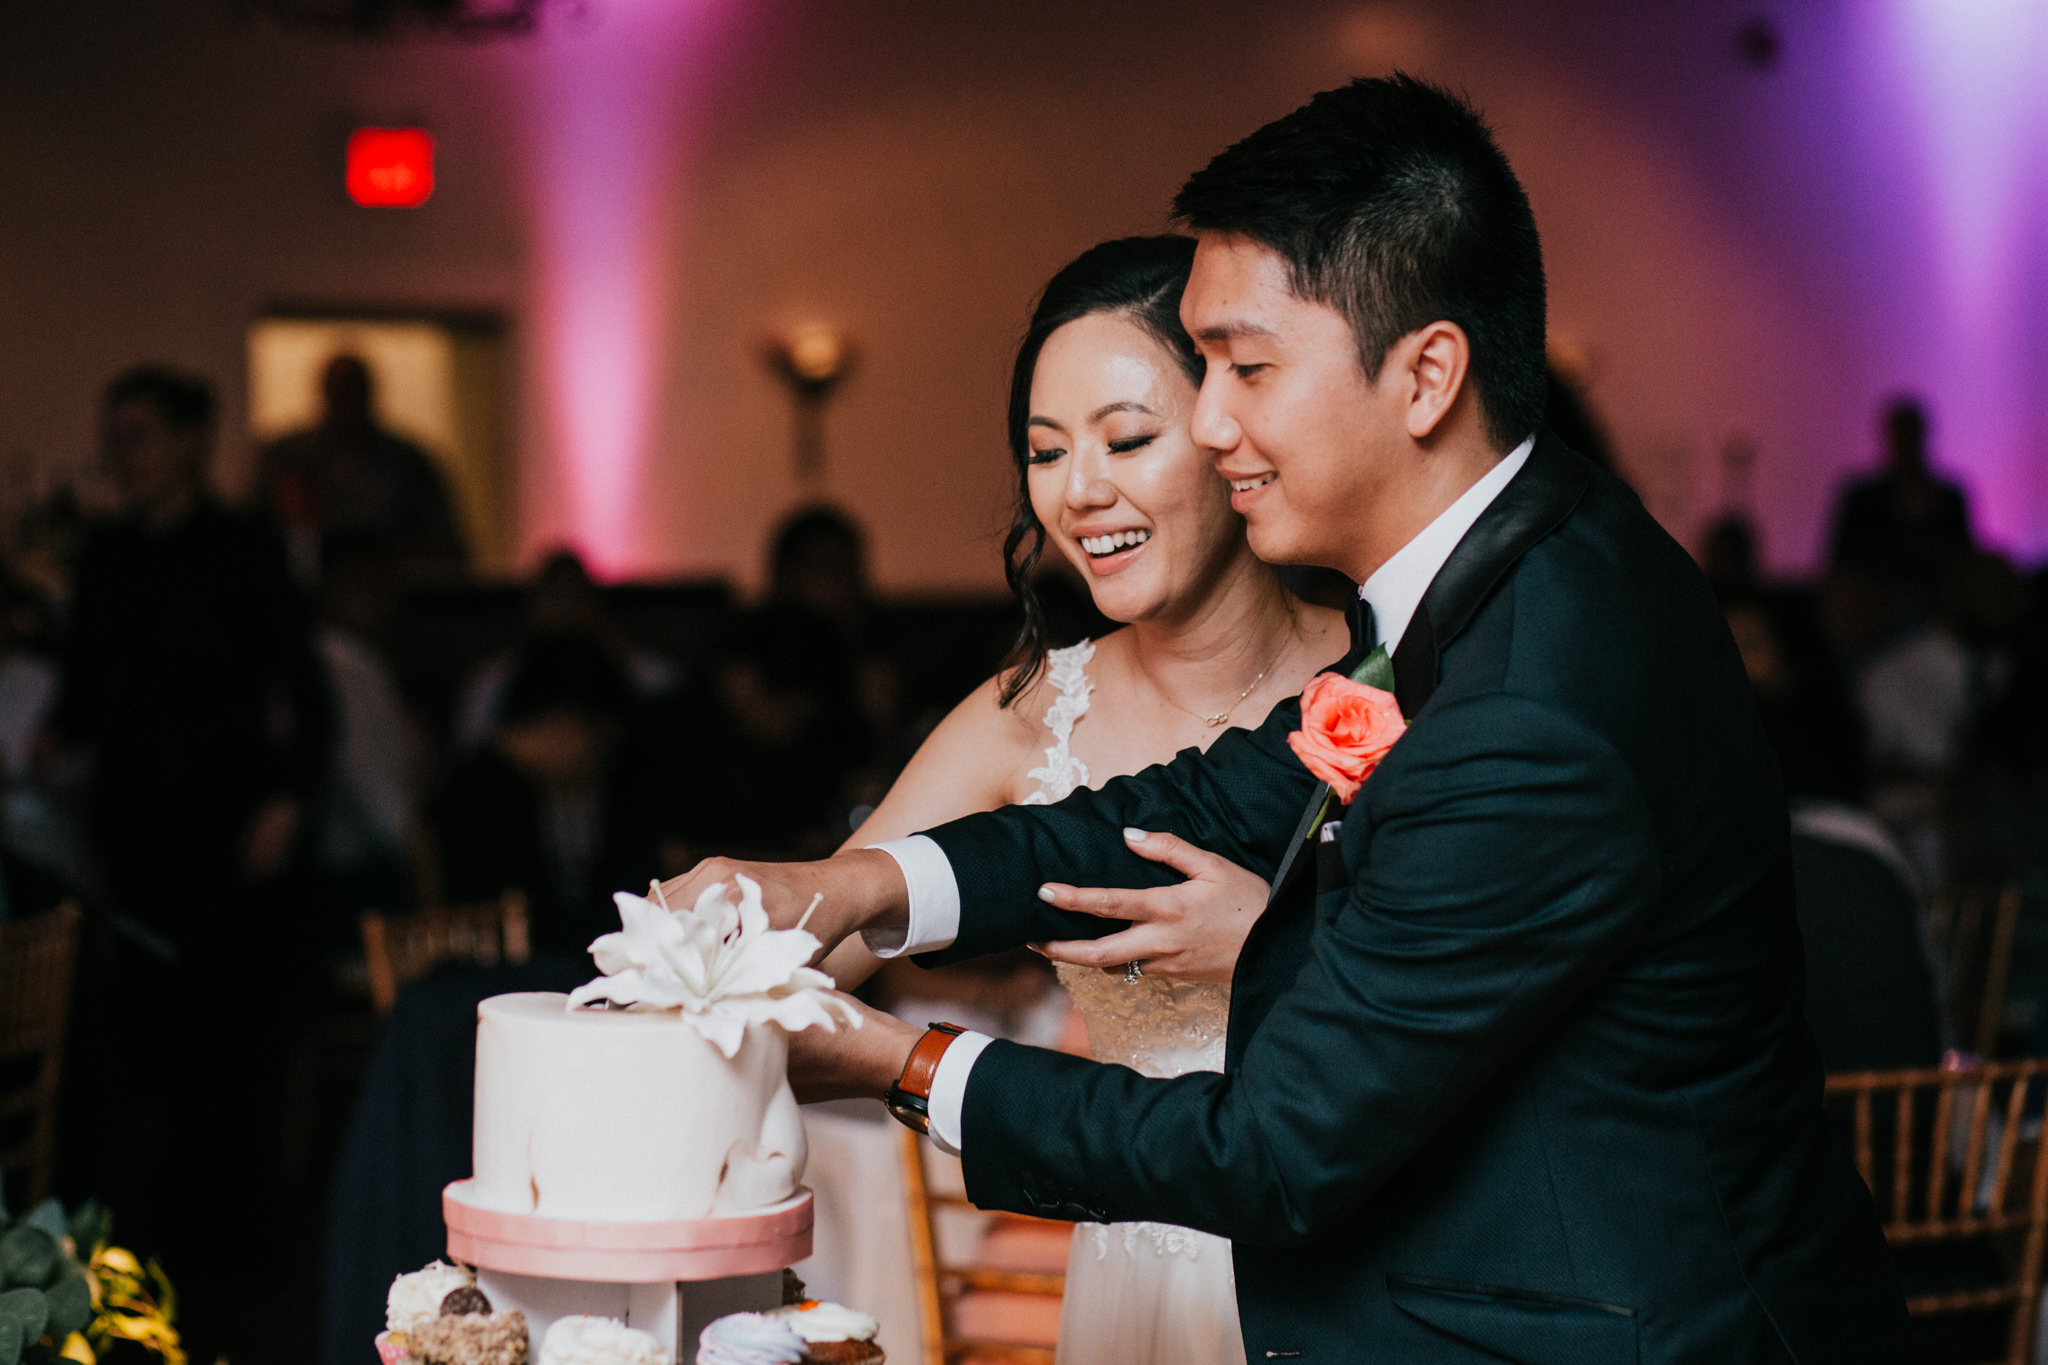 bride and groom cutting a wedding cake together